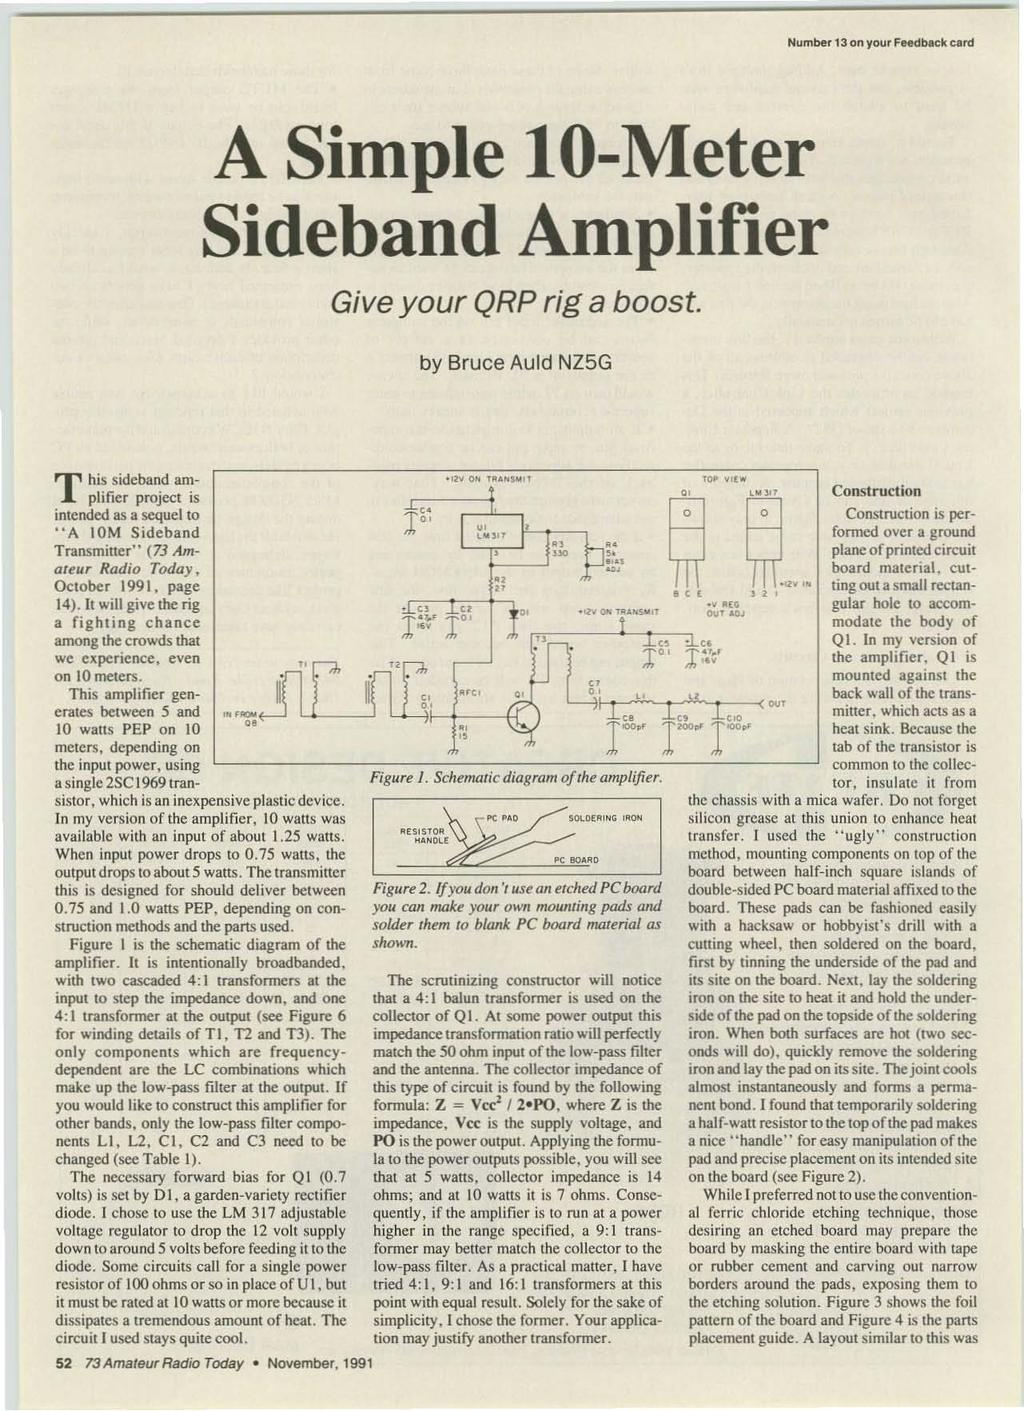 ----------------------1 Number 13 on YOu' FM'db.Kk eard A Simple to-meter Sideband Amplifier Give your QRP rig a boost. by Bruce Auld NZ5G T his sideband amplifier project is intended as a sequel to.